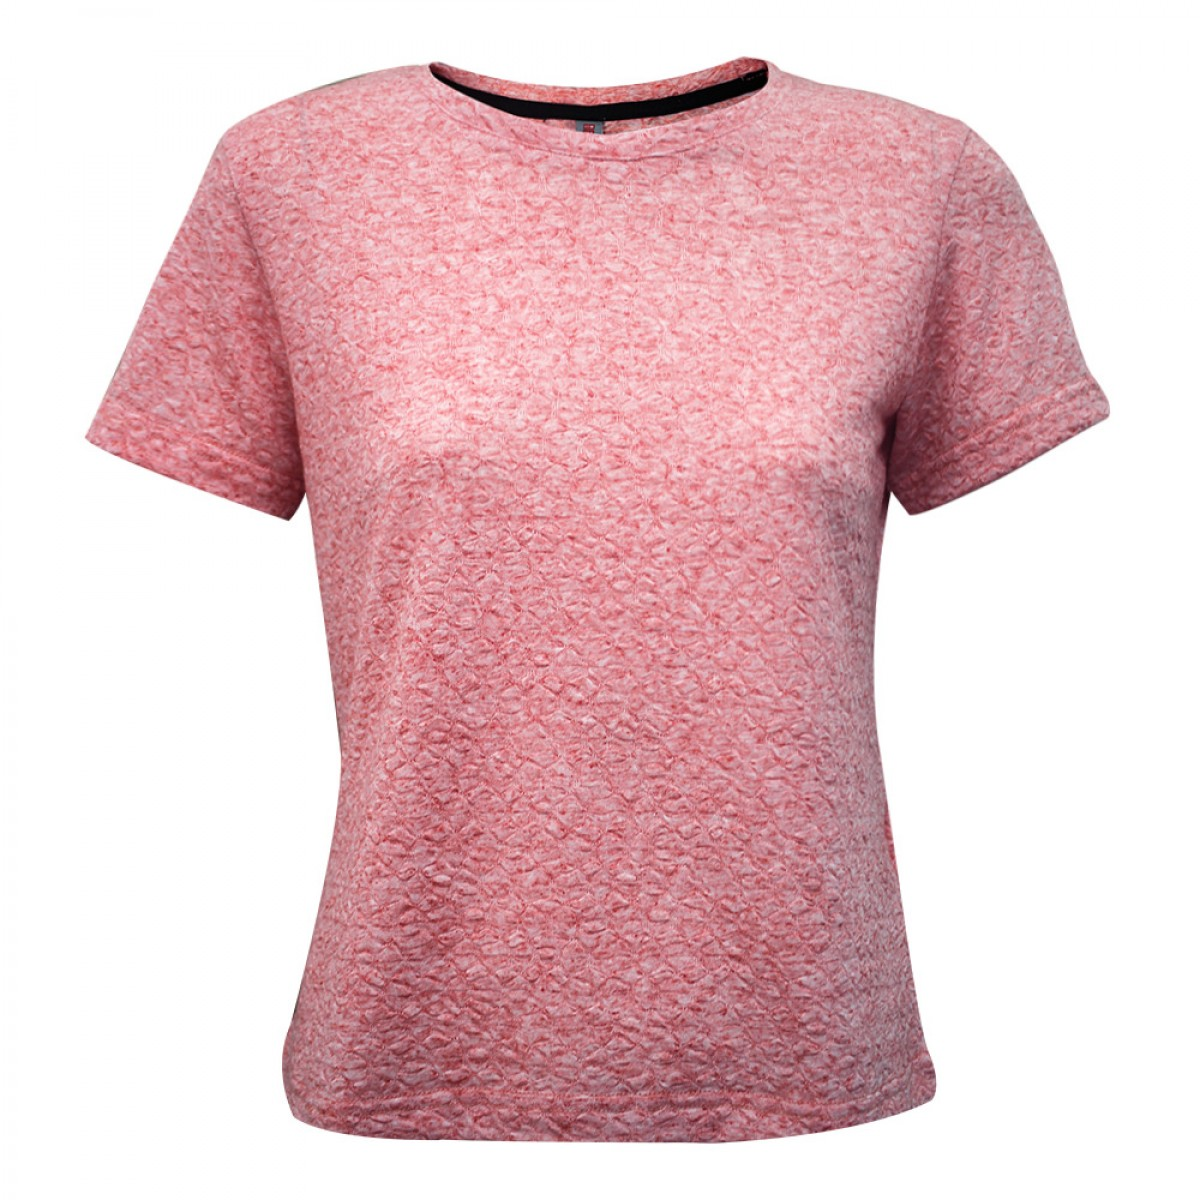 women-round-neck-t-shirt-krt06864-2c